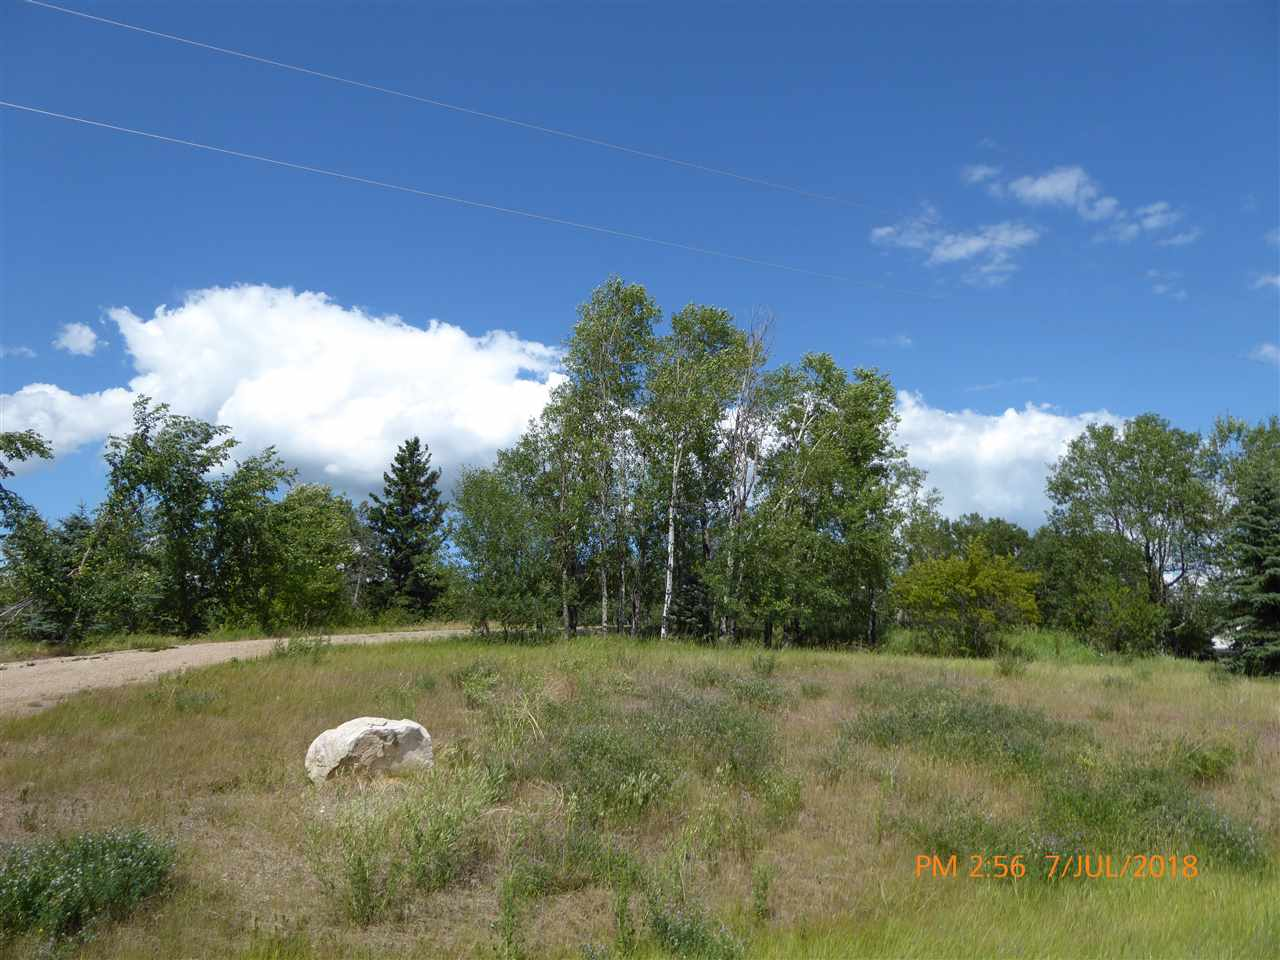 Great Acreage site, backs onto trees. High lot with great drainage. All utilities on site and ready for hook-up, including water. Great mature neighborhood. Quick Possession Available! Why wait? Build Now! Settle out in the Country before Winter!